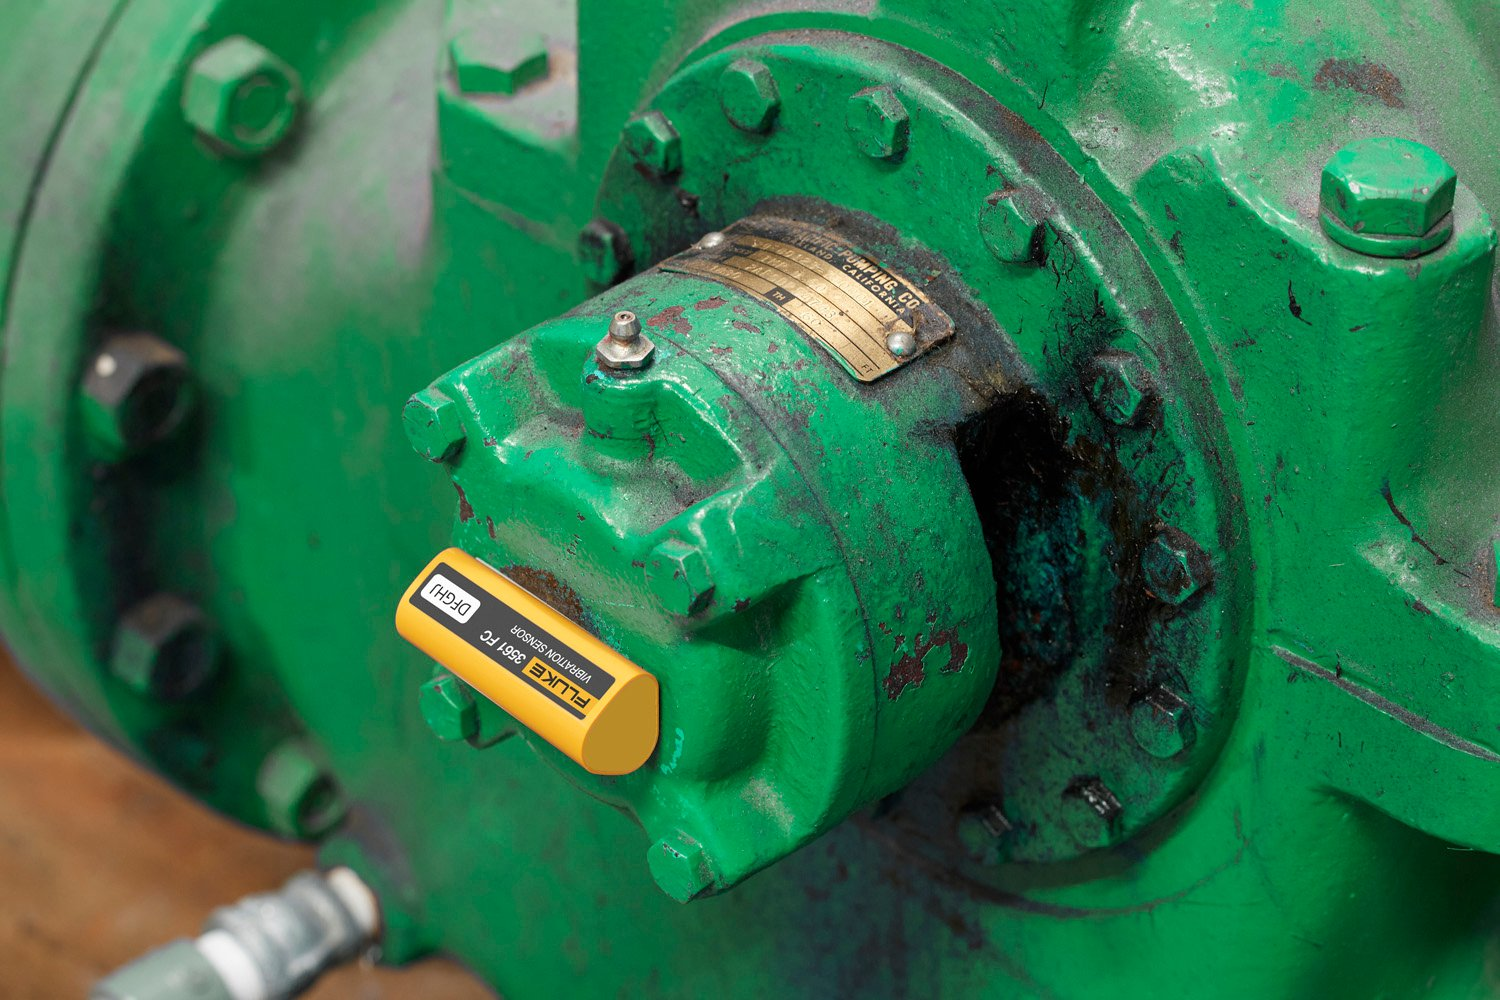 A clickable image of a vibration sensor installed on an asset. Leads to the vibration monitoring page